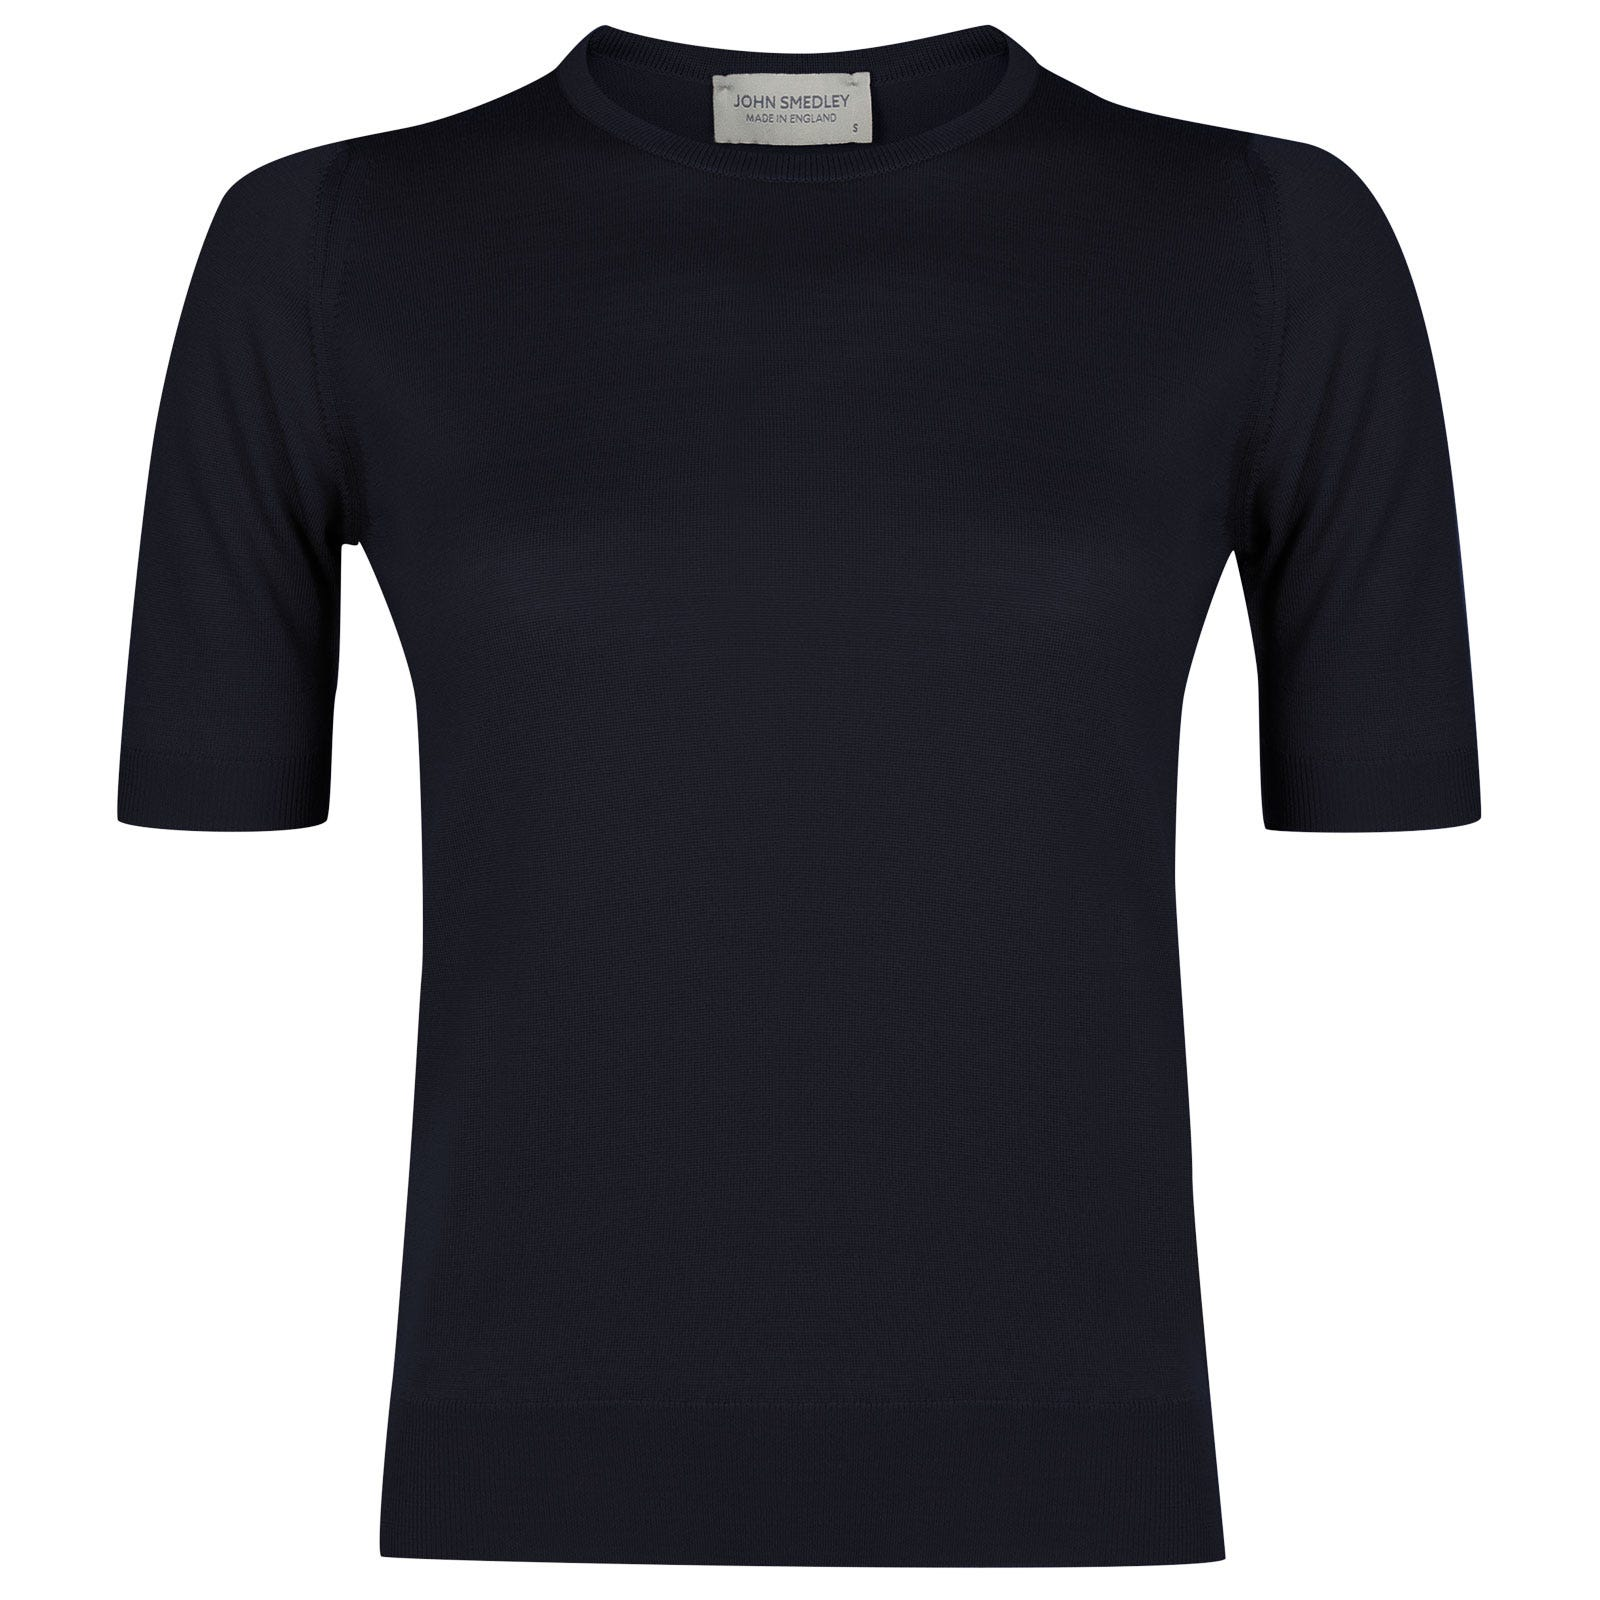 John Smedley trieste Merino Wool Sweater in Midnight-M